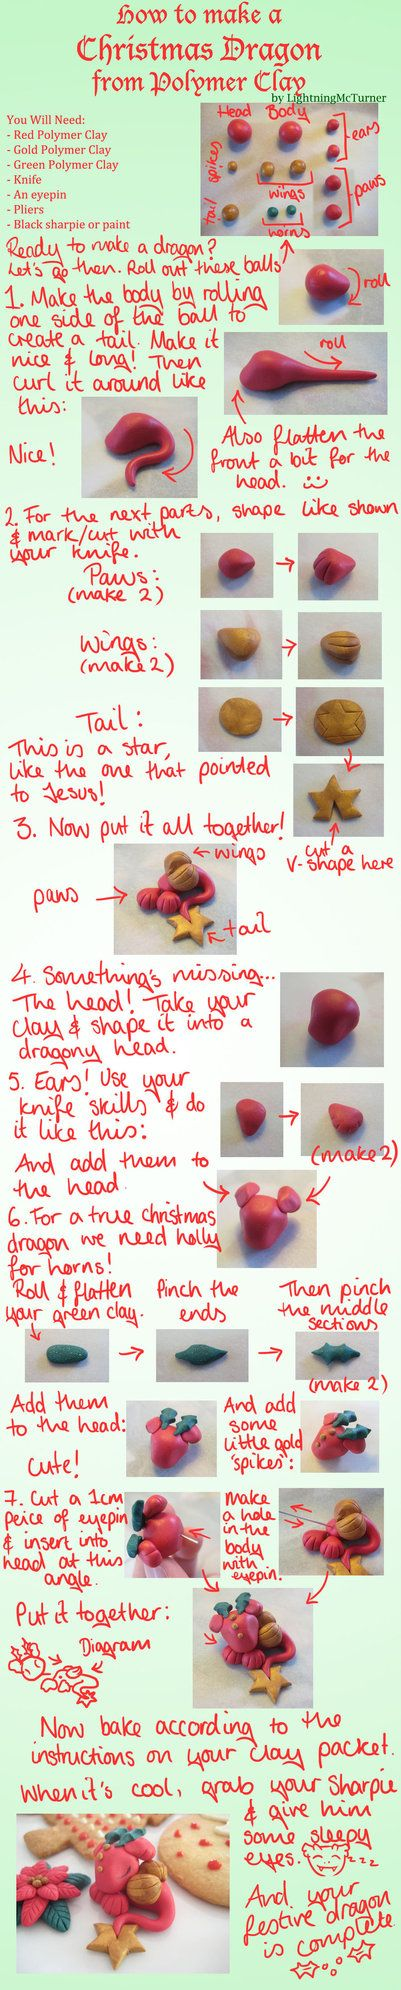 Christmas Dragon Polymer Clay Tutorial by ~LightningMcTurner on deviantART